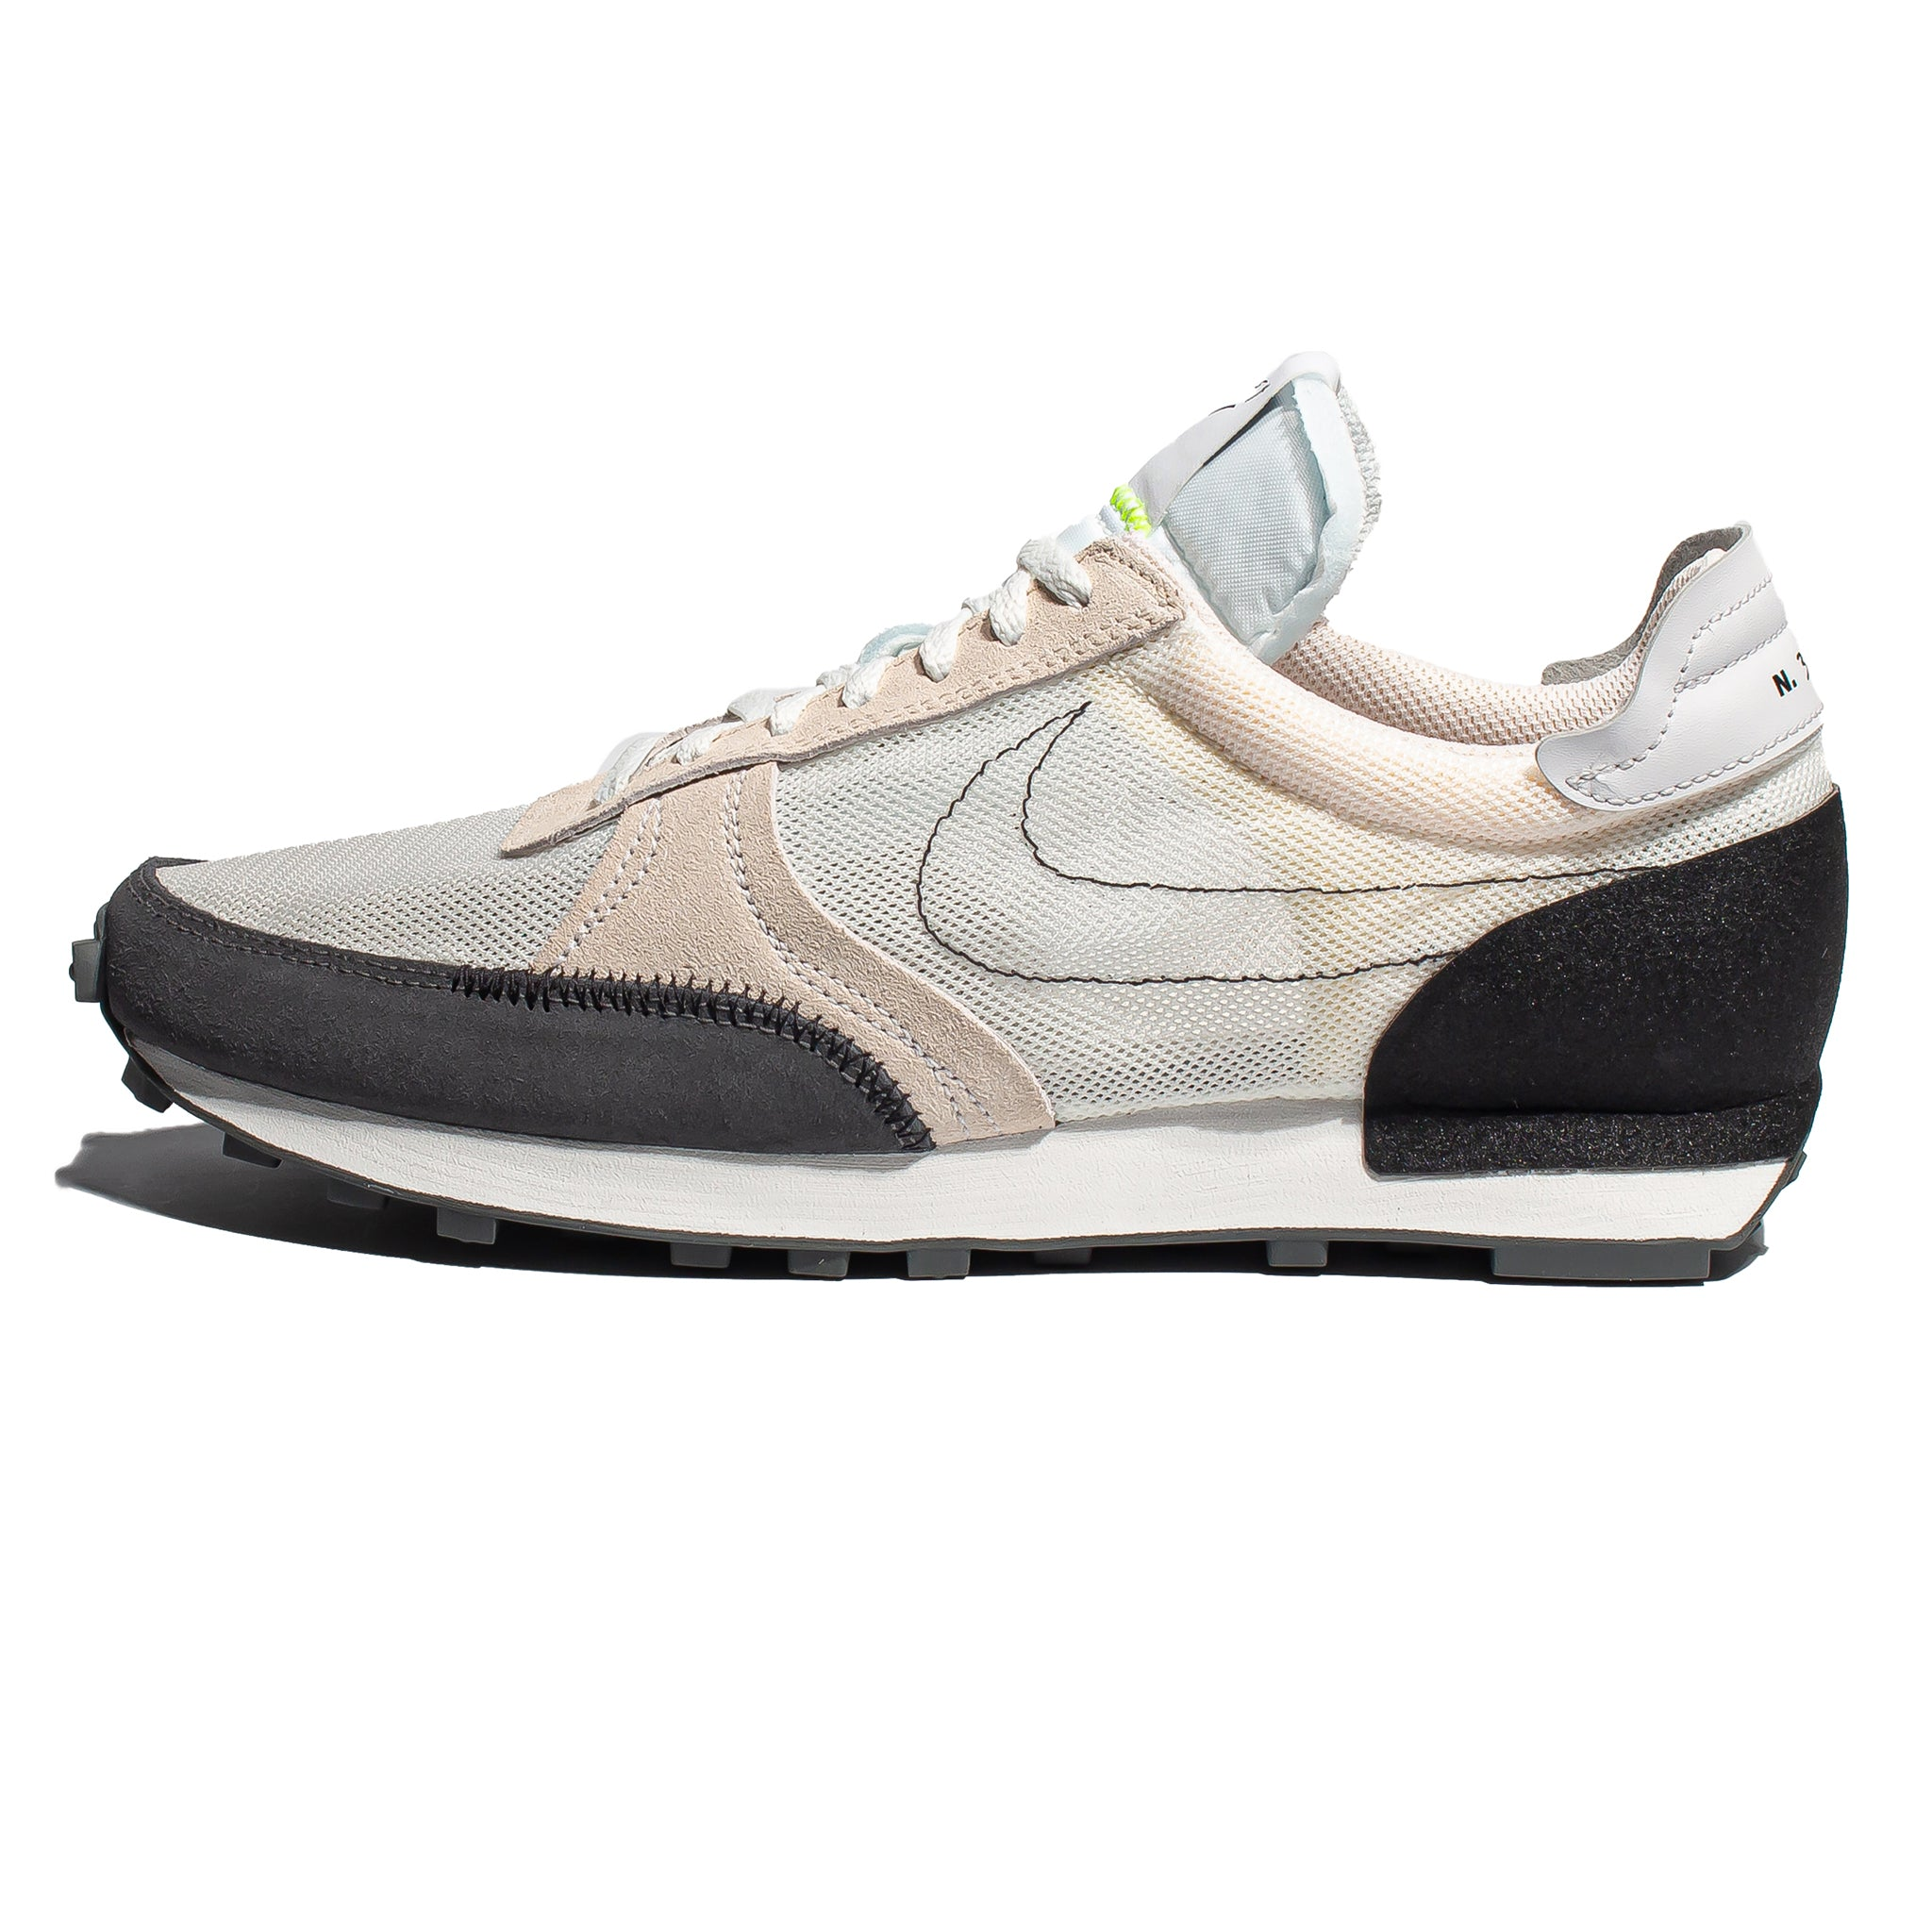 Nike Daybreak-Type N.354 'Summit White/Black'